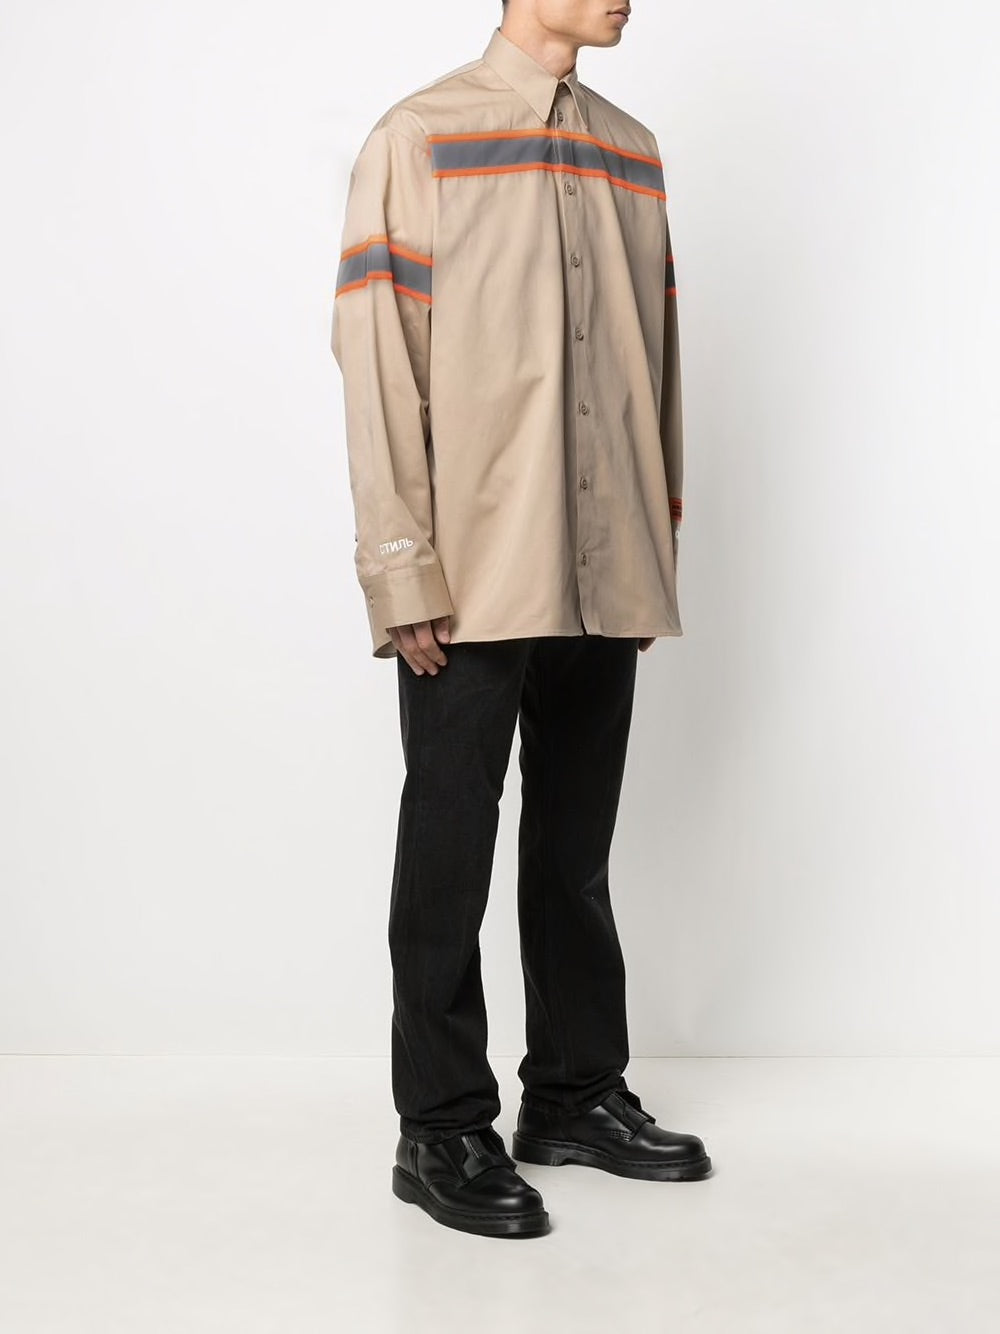 HERON PRESTON MEN REFLECTOR OUTDOOR SHIRT